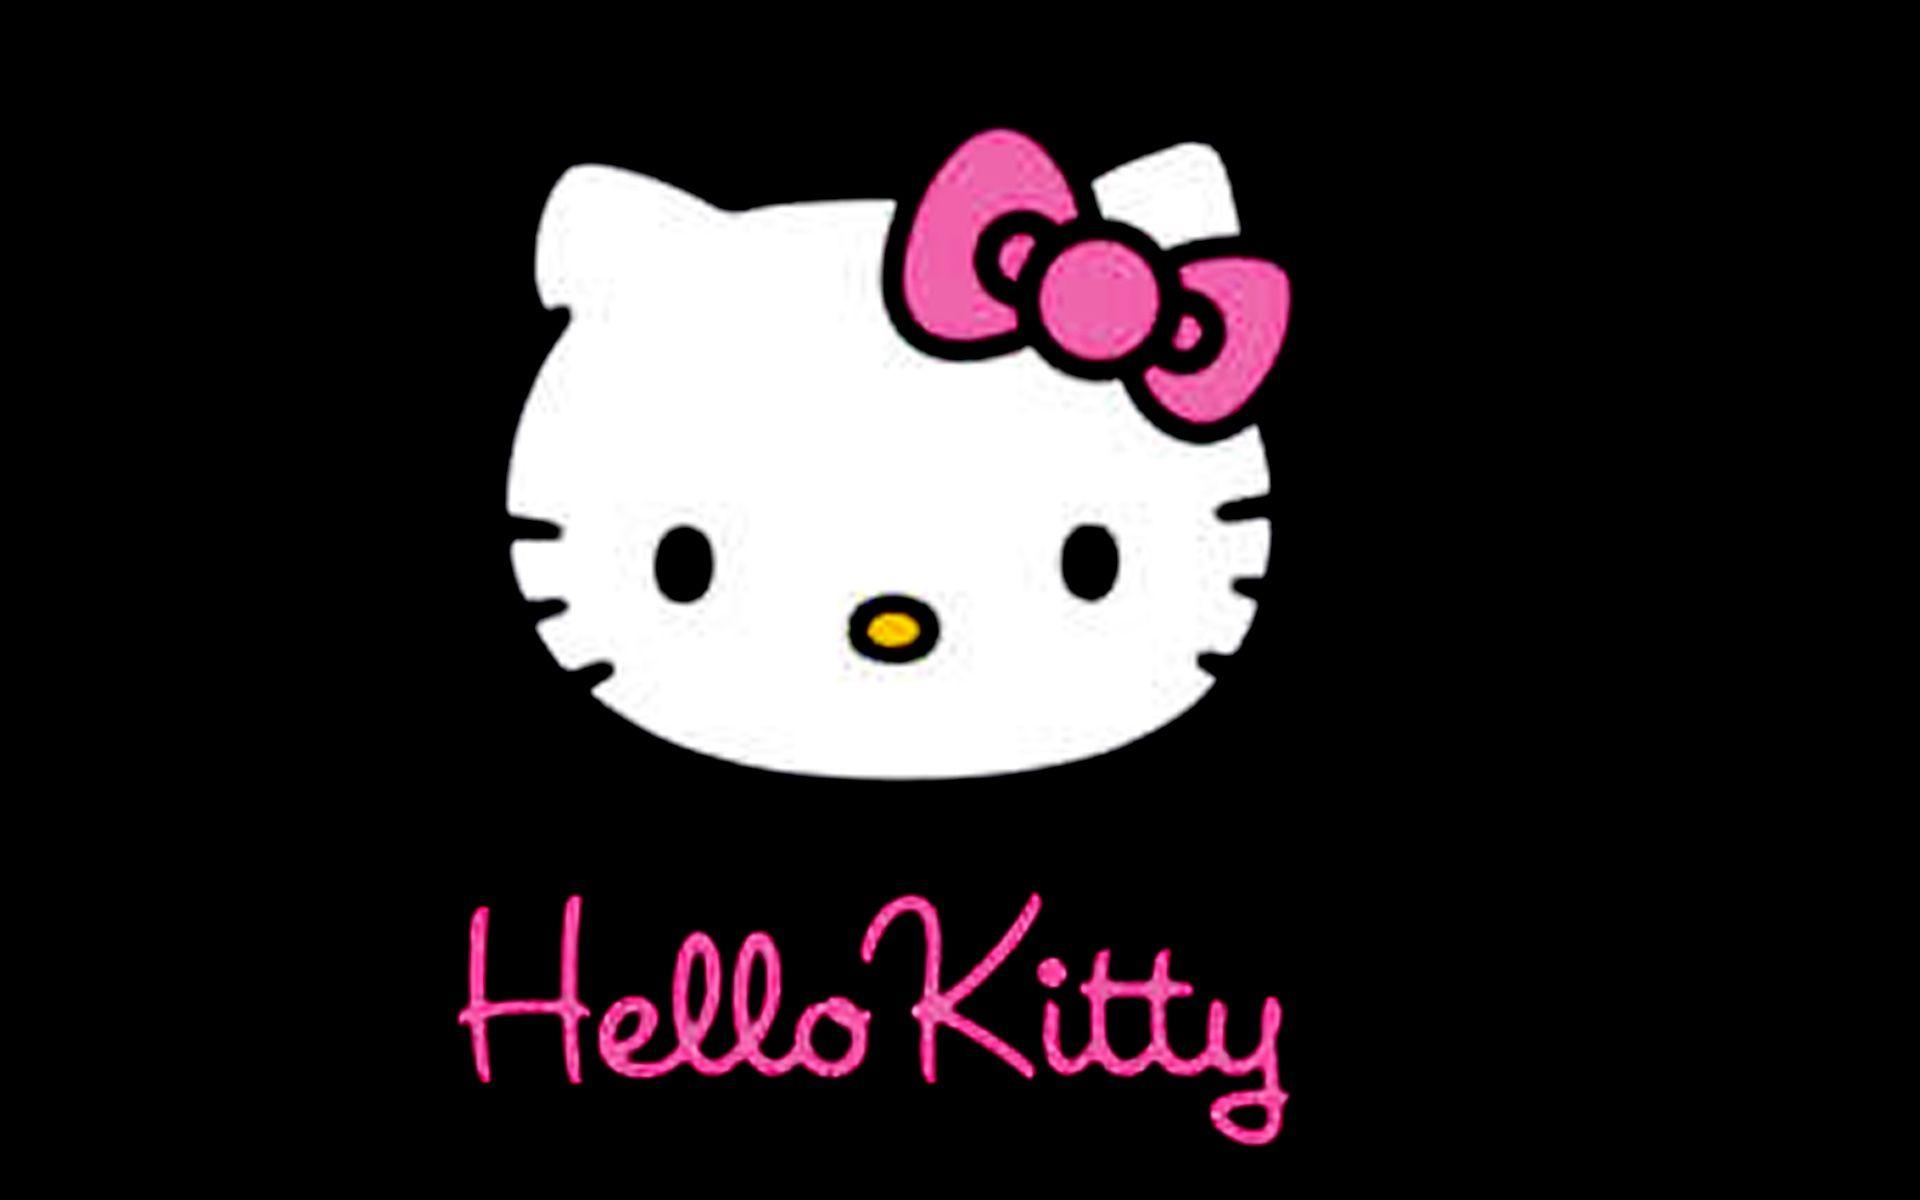 Free Download Hello Kitty Wallpapers For Tablet 1920x1200 For